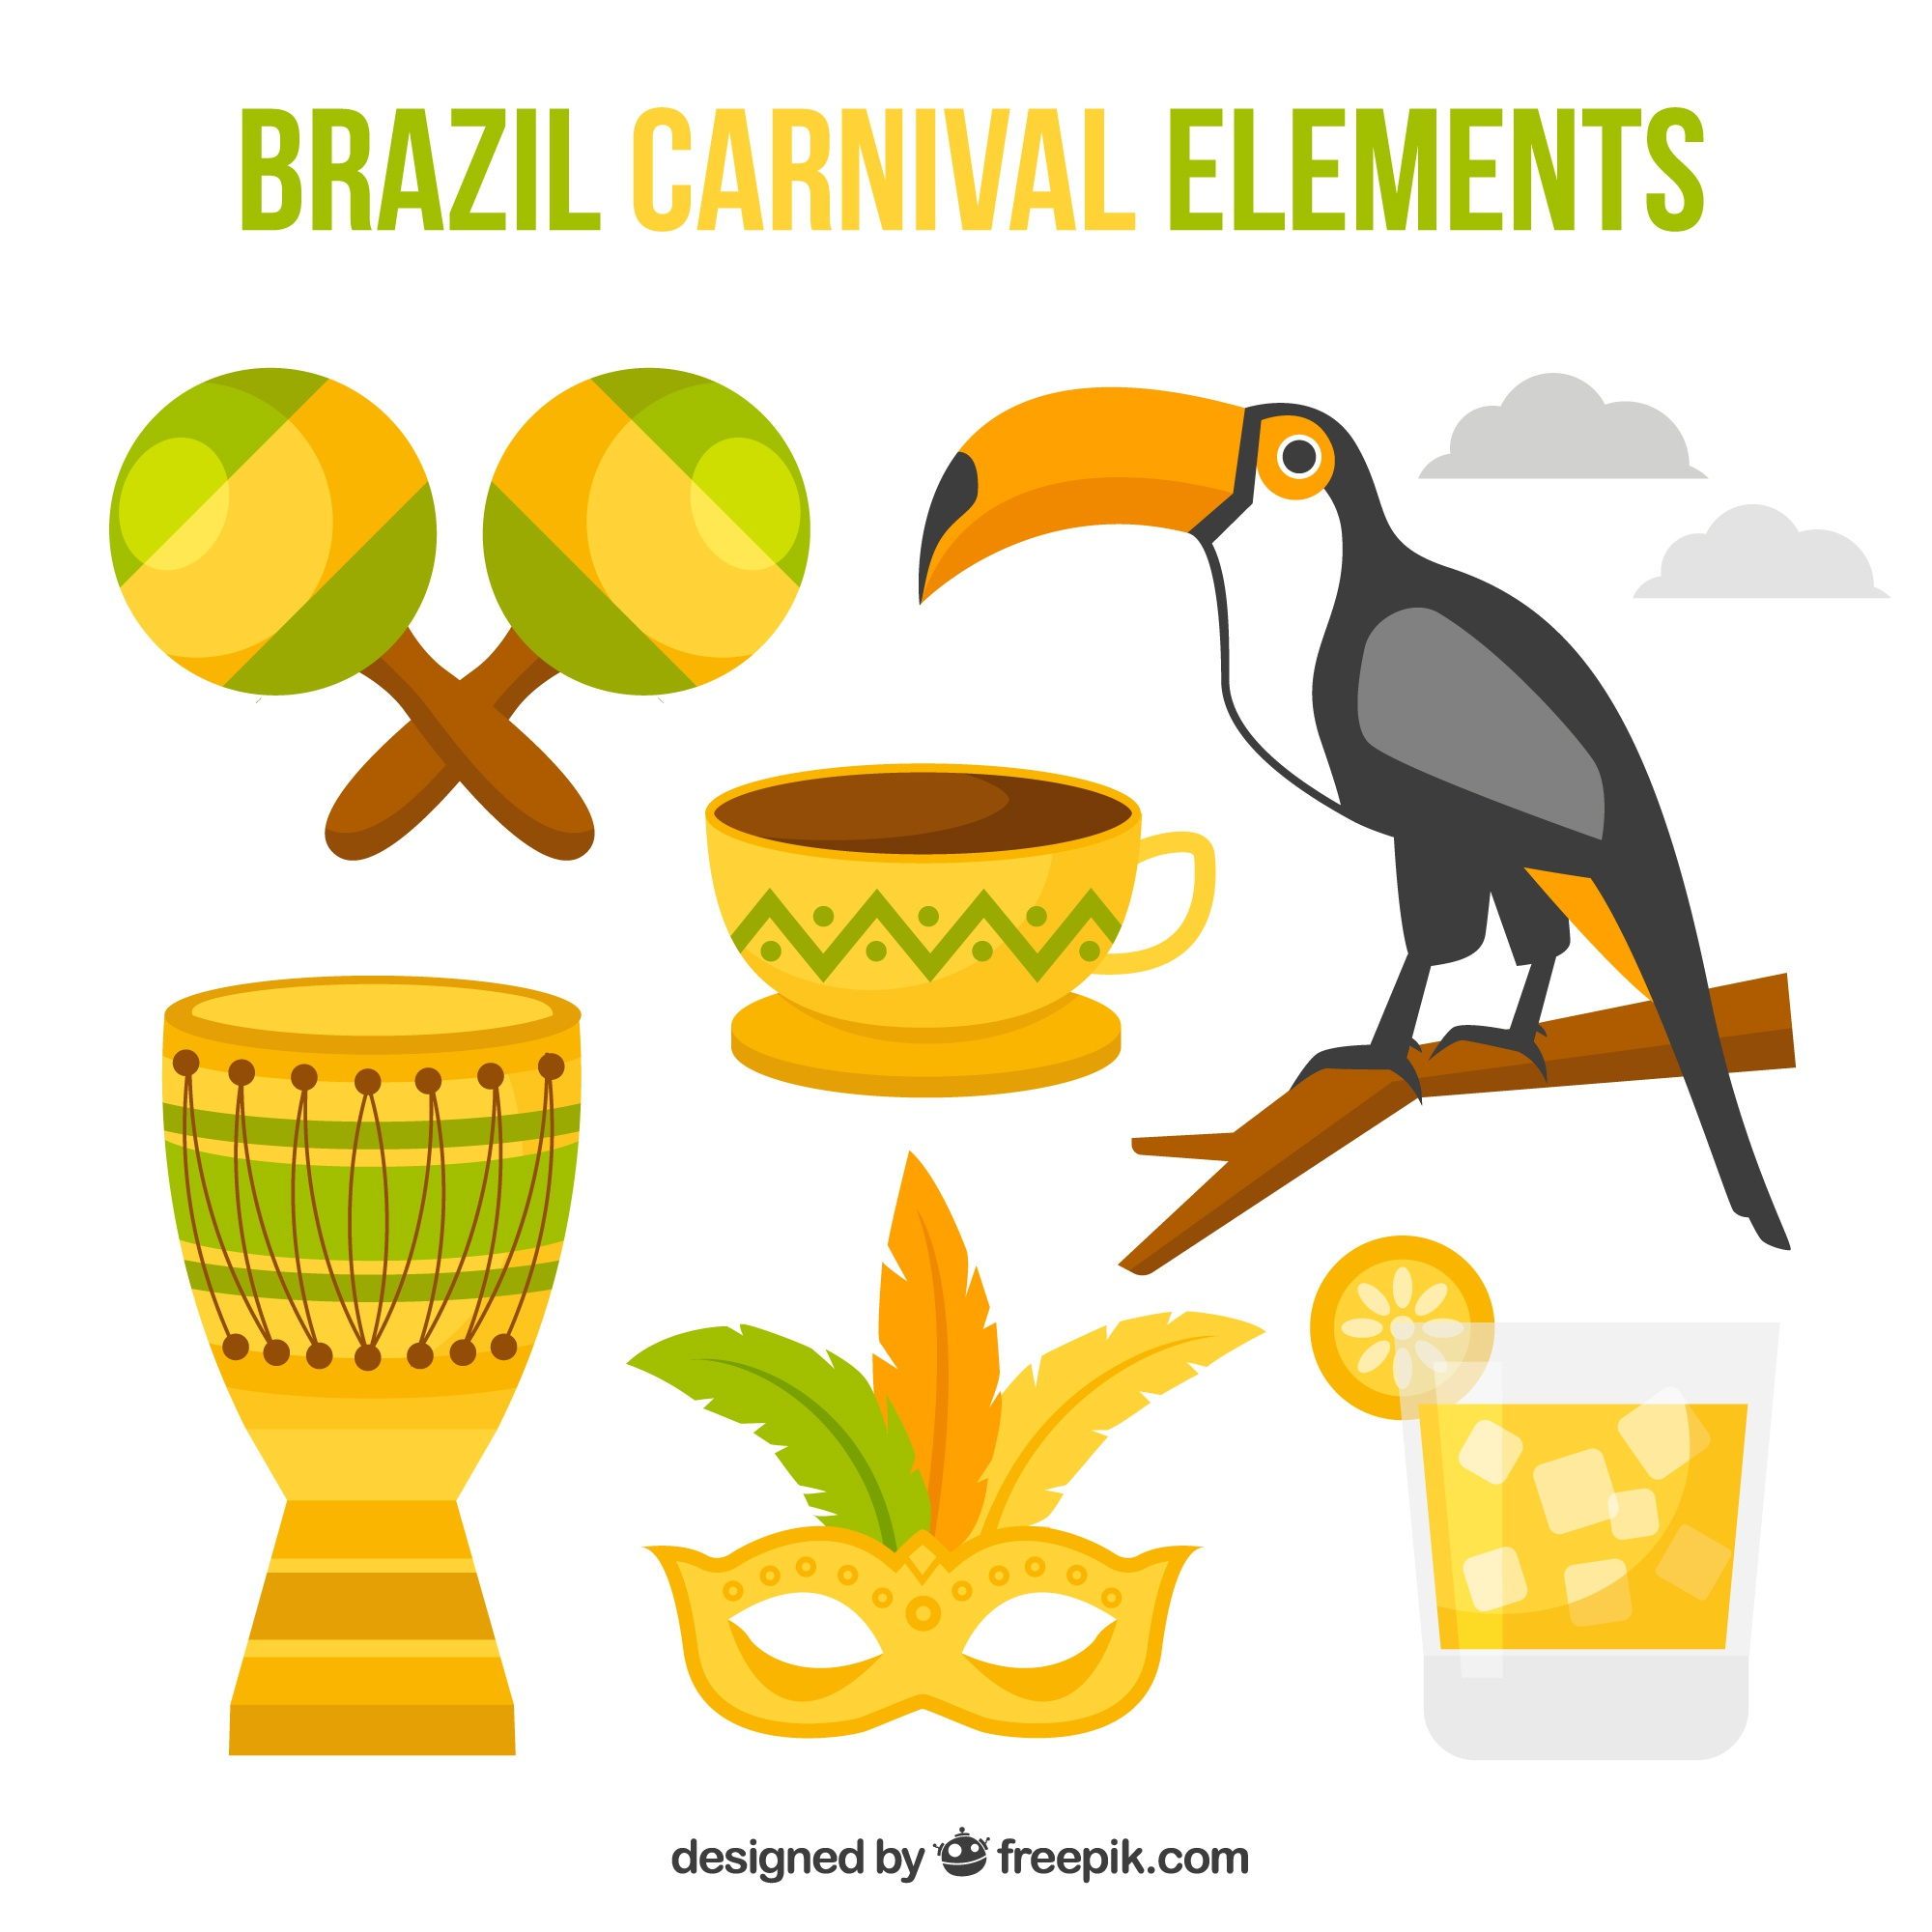 Great elements ready for brazilian carnival